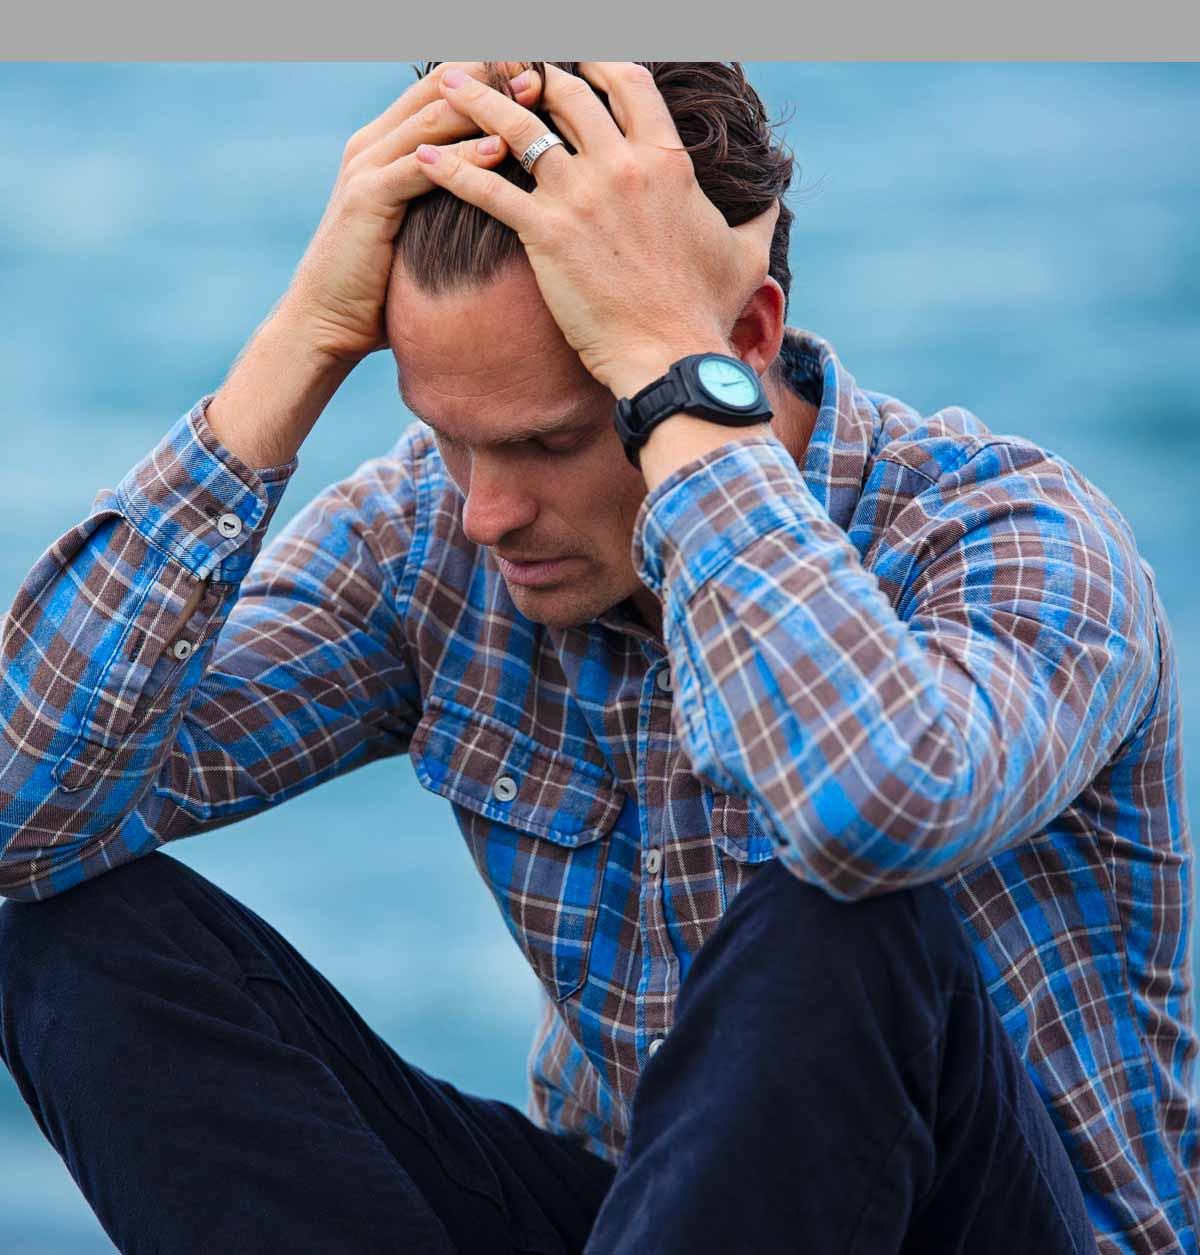 Stressed about data loss Sydney - man frustrated